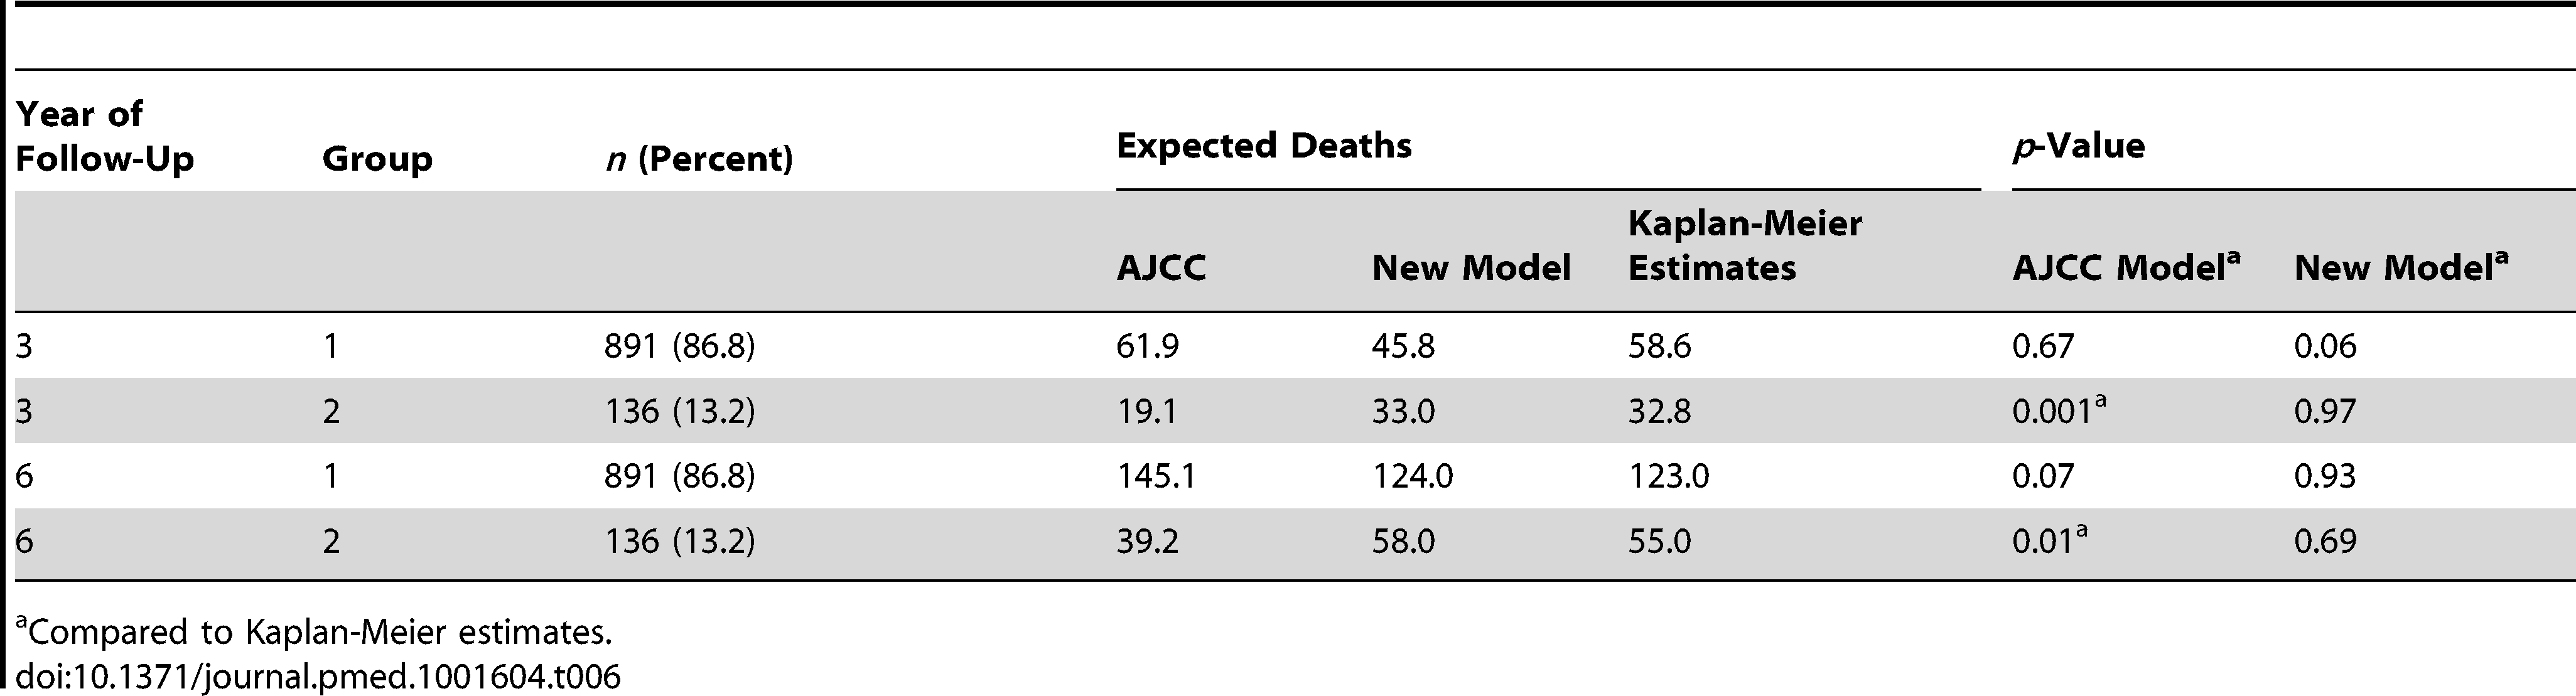 Kaplan-Meier estimates versus predicted deaths for a follow-up of 3 and 6 y by model and group.